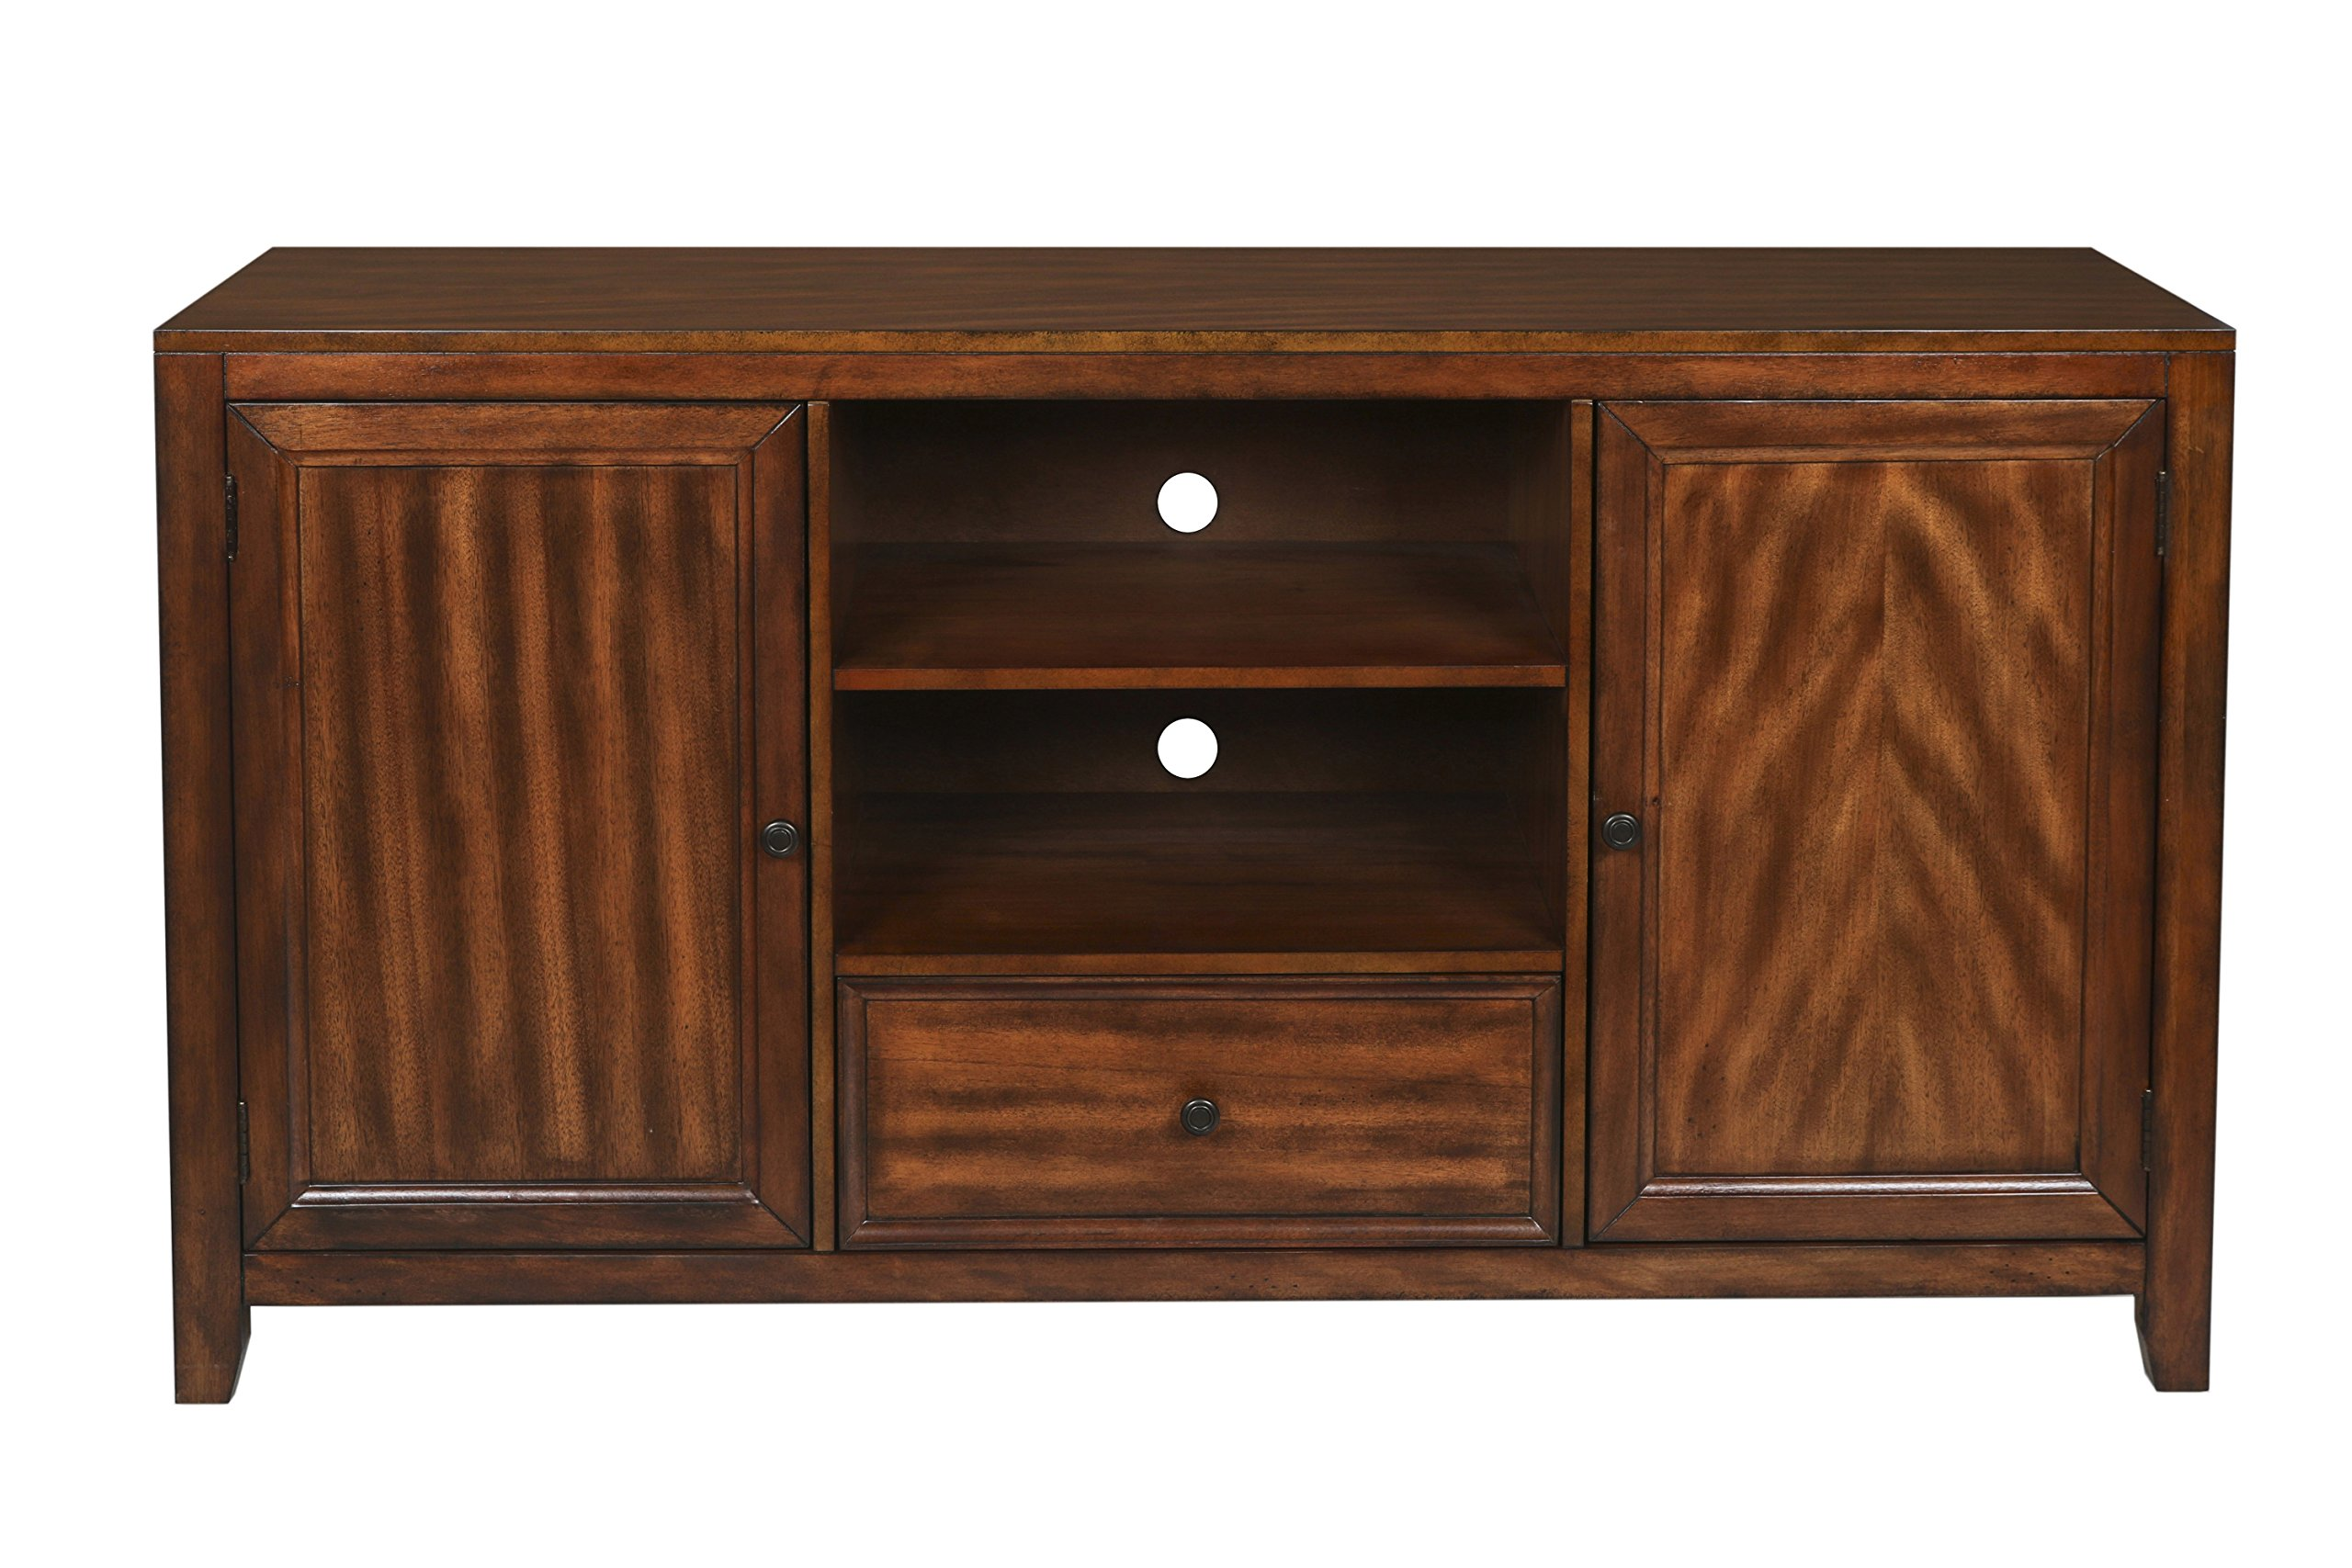 New Classic Contempo Entertainment Console, Burnished Walnut